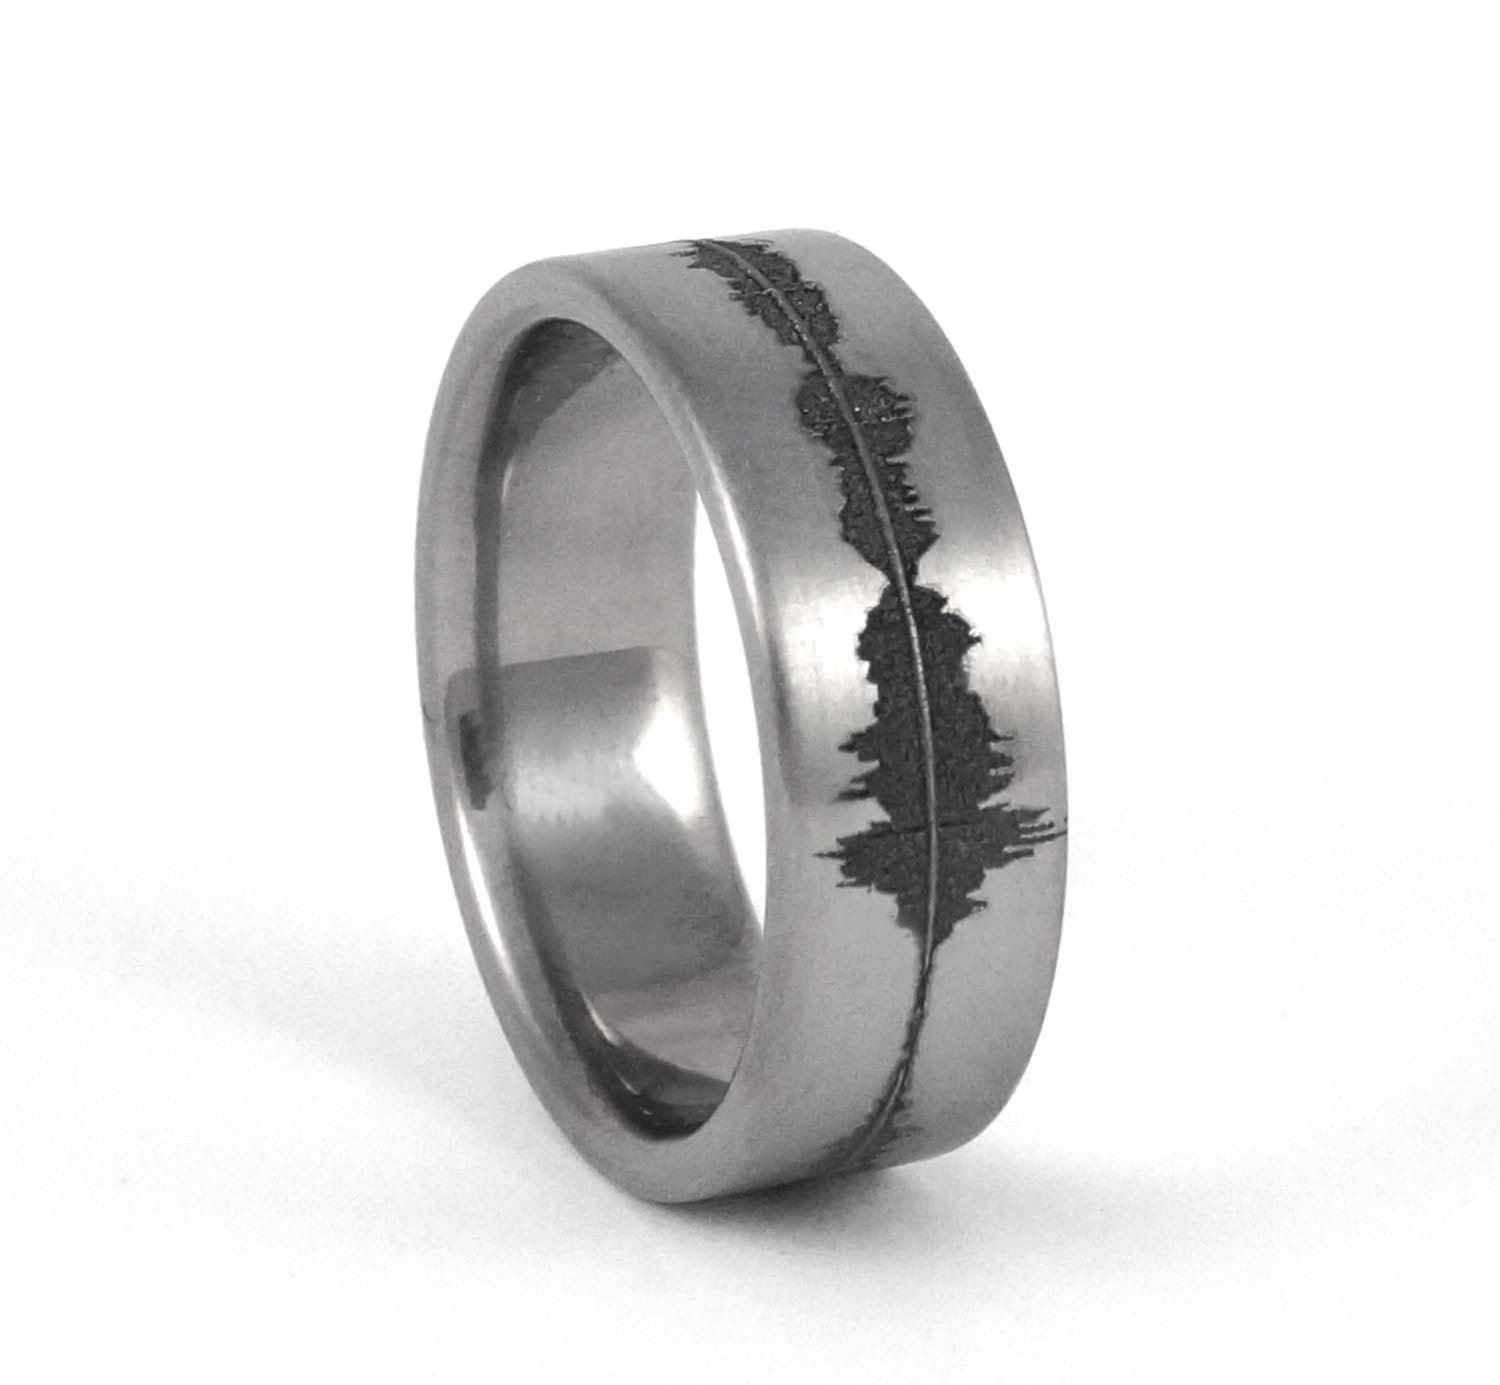 lightning inspired wedding a takayas bands jewelry rings mens engagement ring blog fantasy design to custom final geek gunblade how